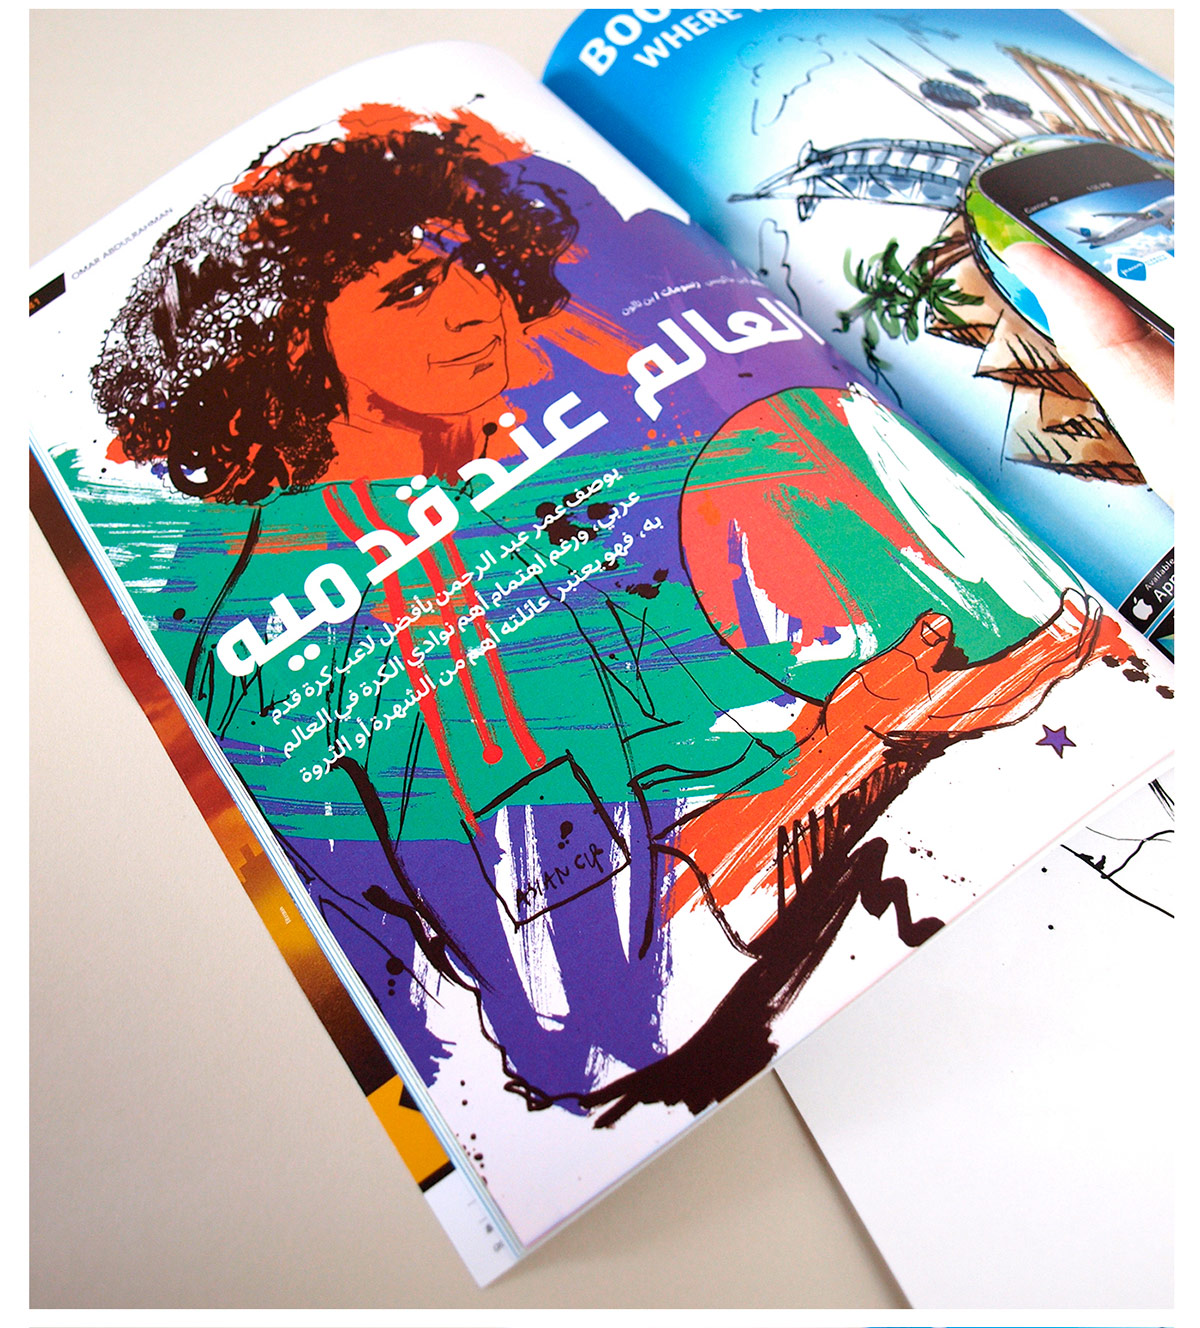 Ink illustration, loose drawing, line art, pen and ink illustration of omar abdulrahman, al-ain, dubai illustration, hand drawn, line drawing, art studio, ben tallon, editorial illustrator